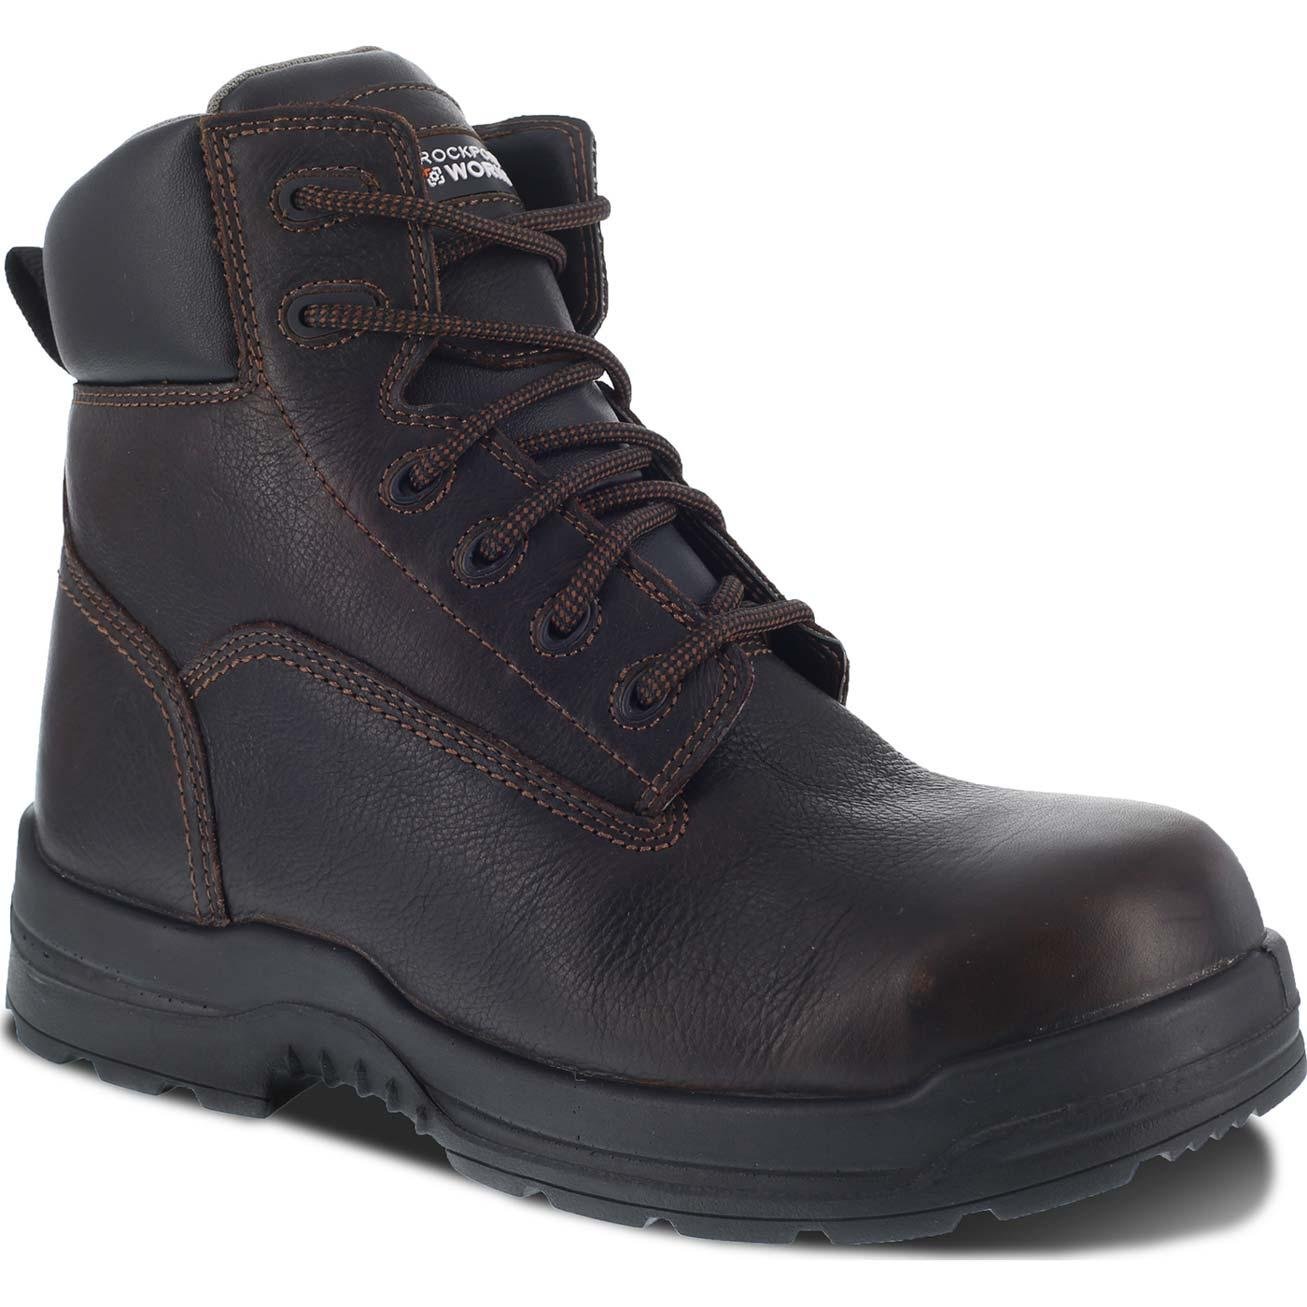 Rockport Works More Energy Composite Toe Static-Dissipative Work  BootRockport Works More Energy Composite Toe Static-Dissipative Work Boot da2ec601a